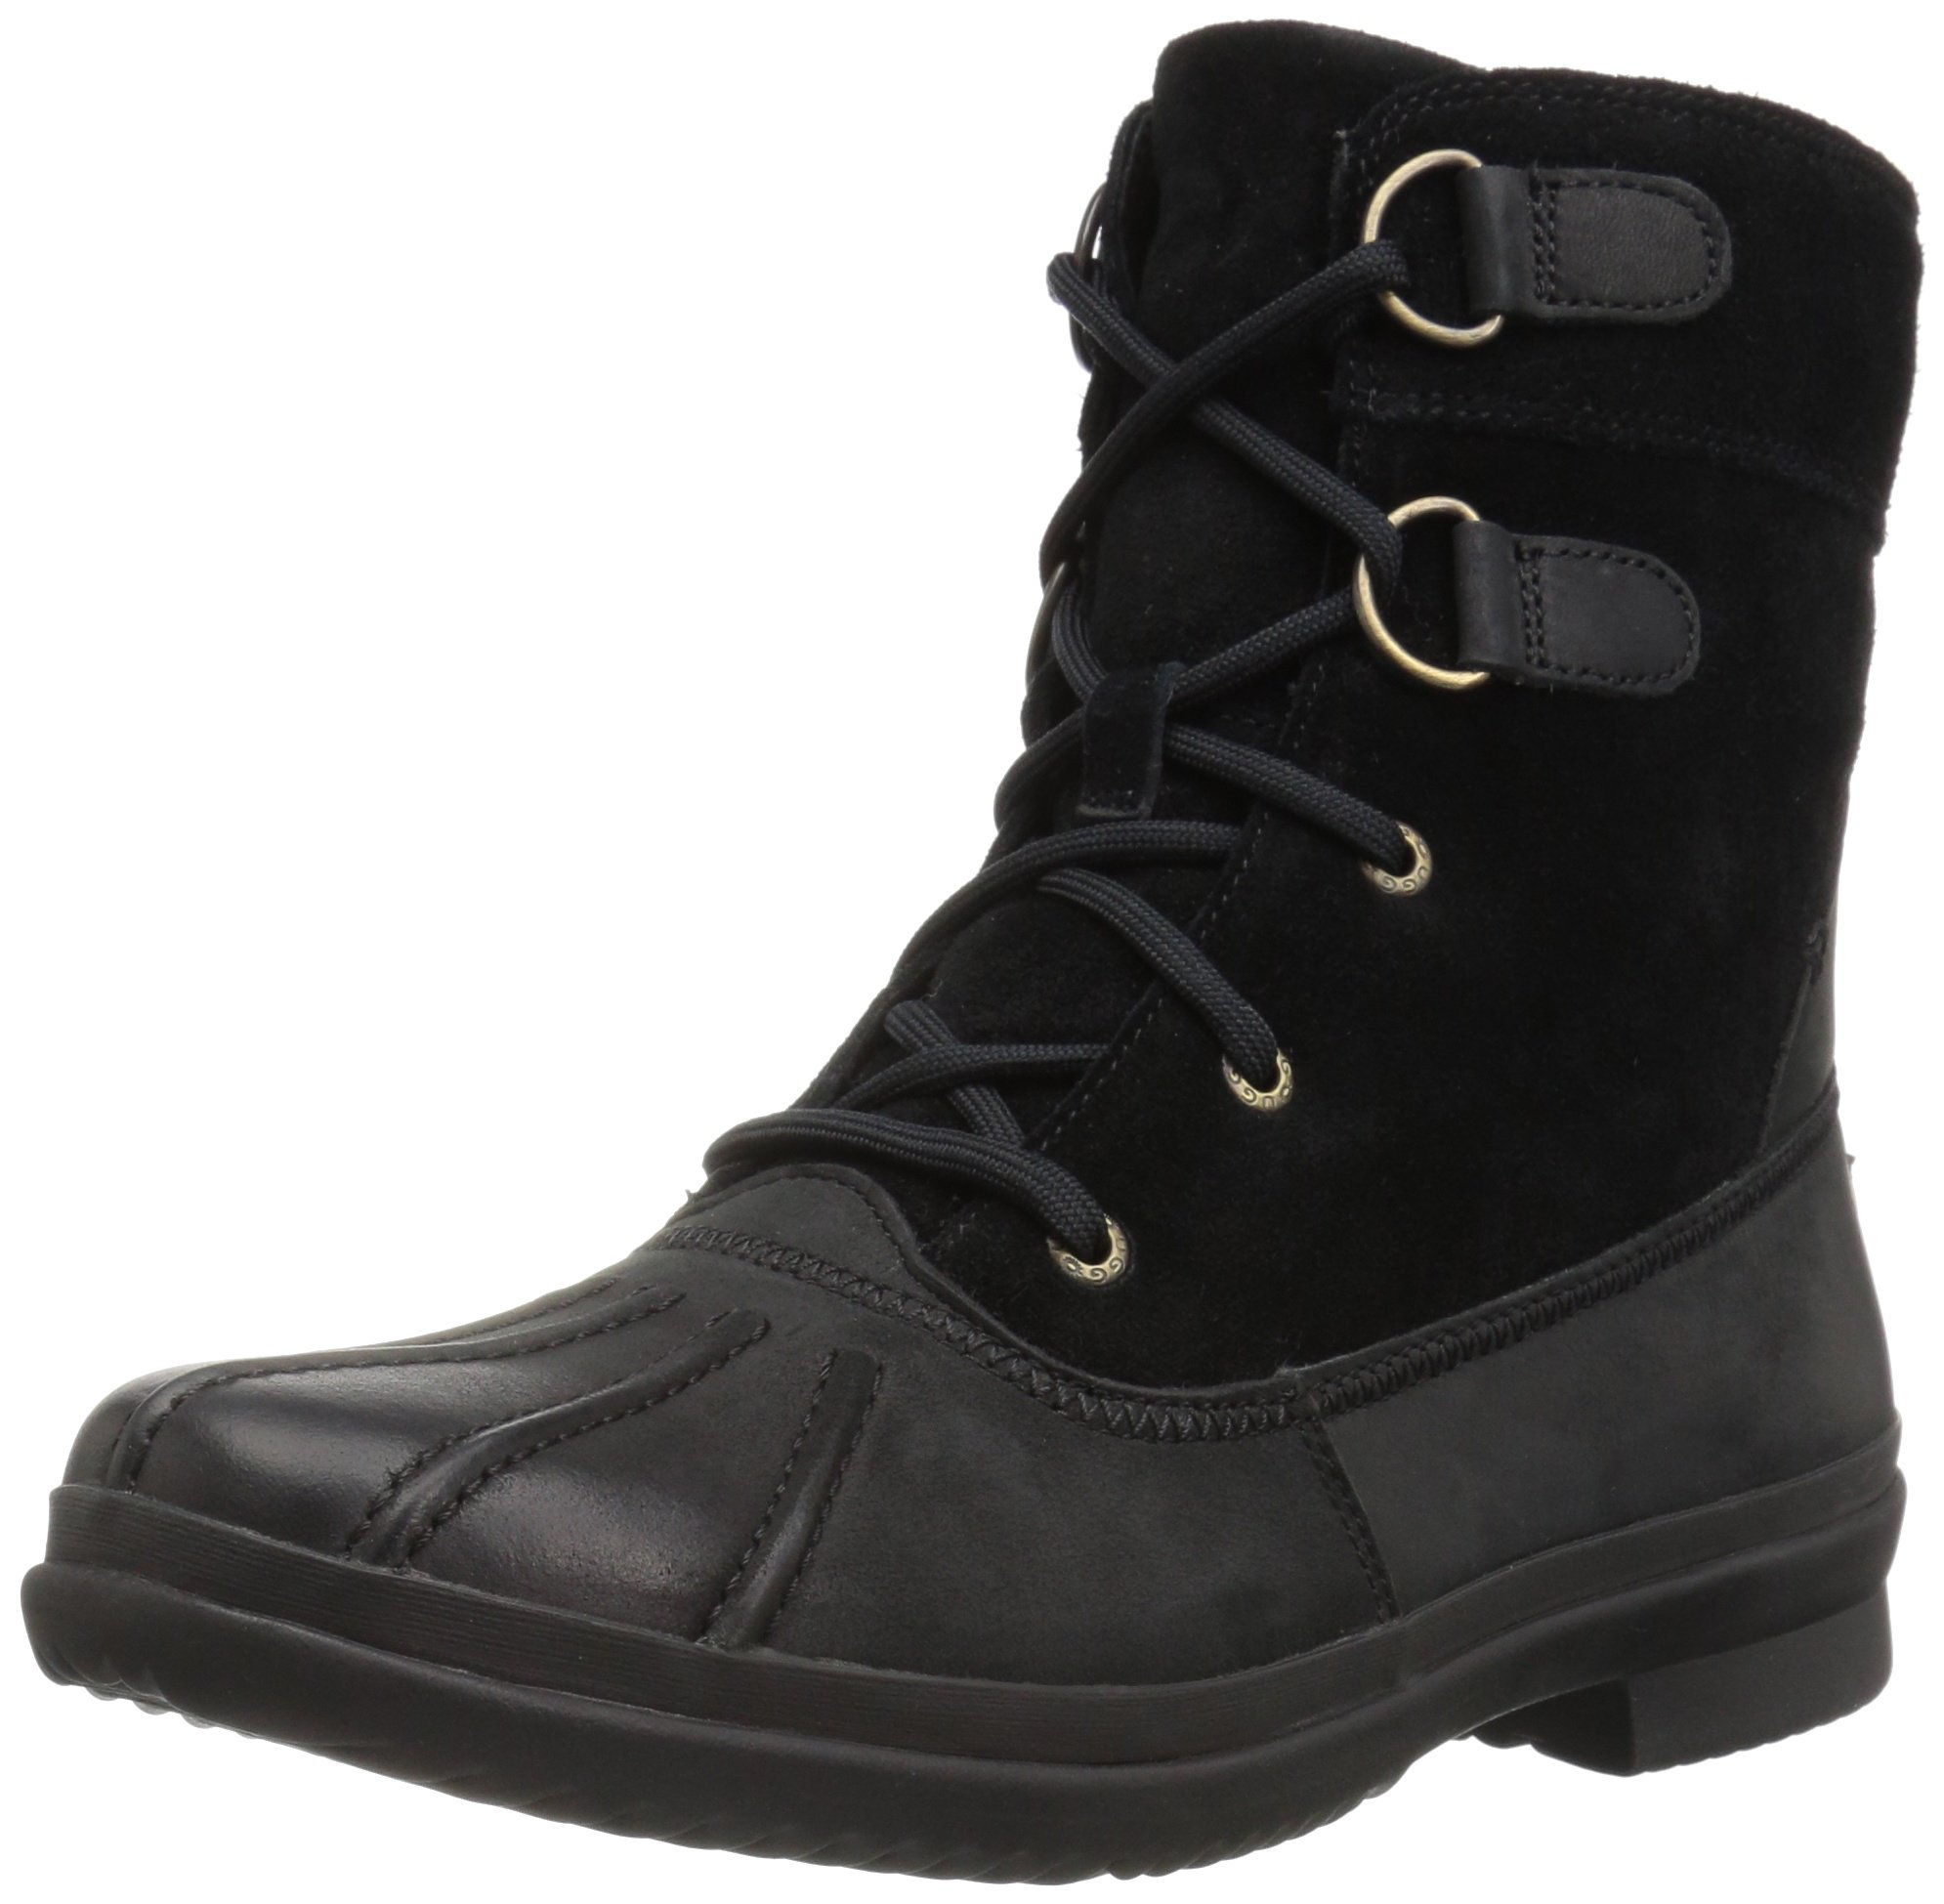 UGG Women's Azaria Winter Boot, Black, 7.5 M US